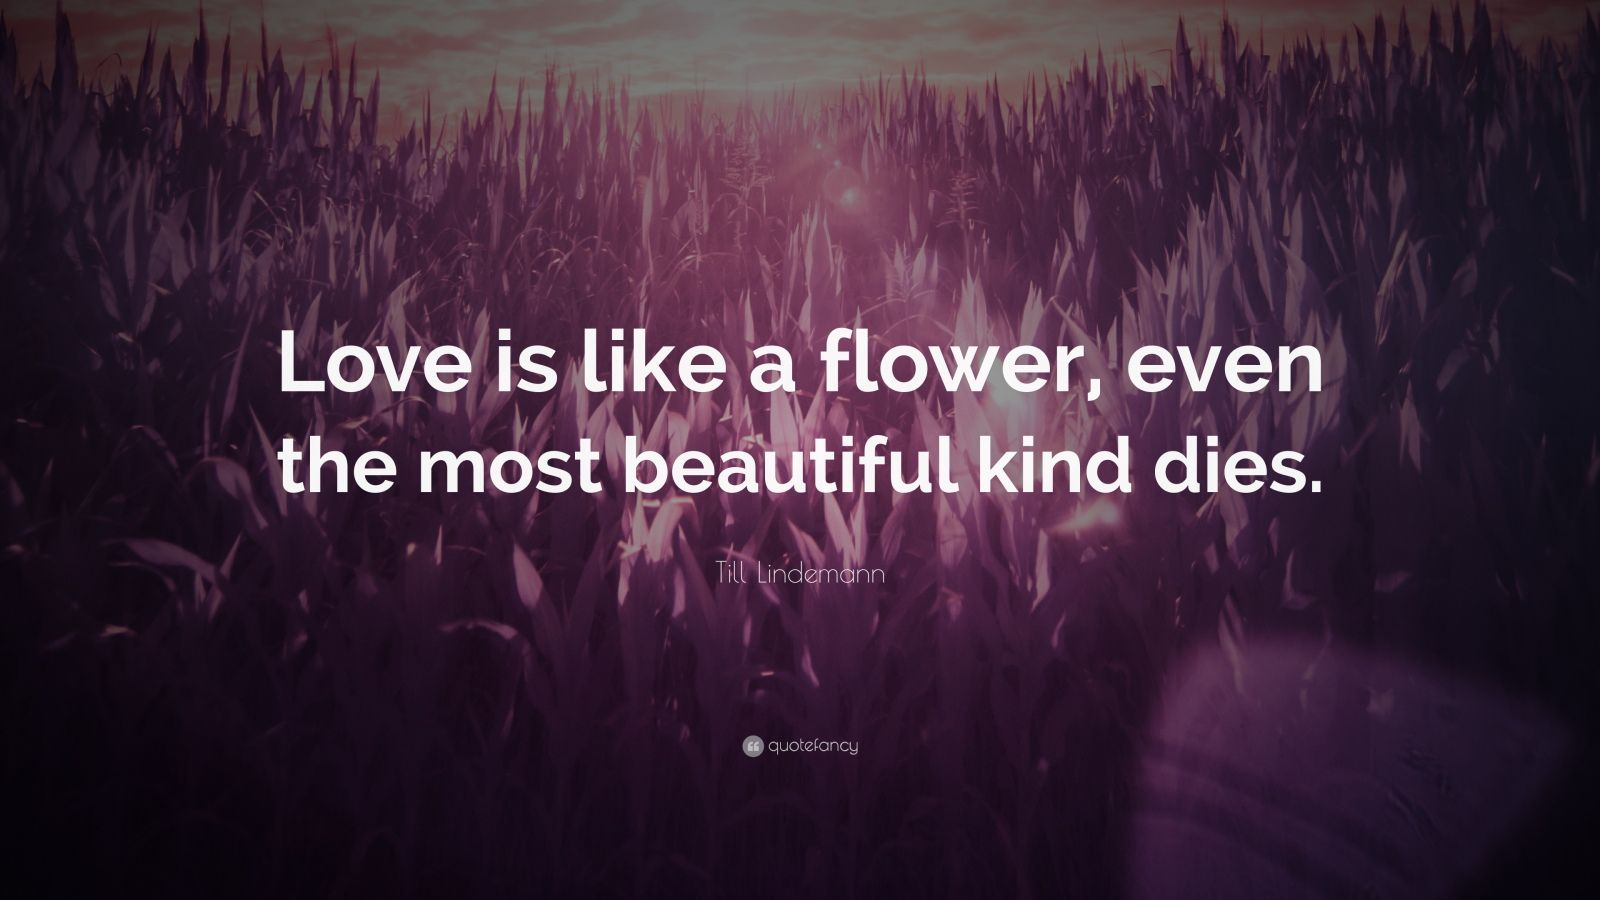 """Till Lindemann Quote: """"Love is like a flower, even the most beautiful kind dies."""""""